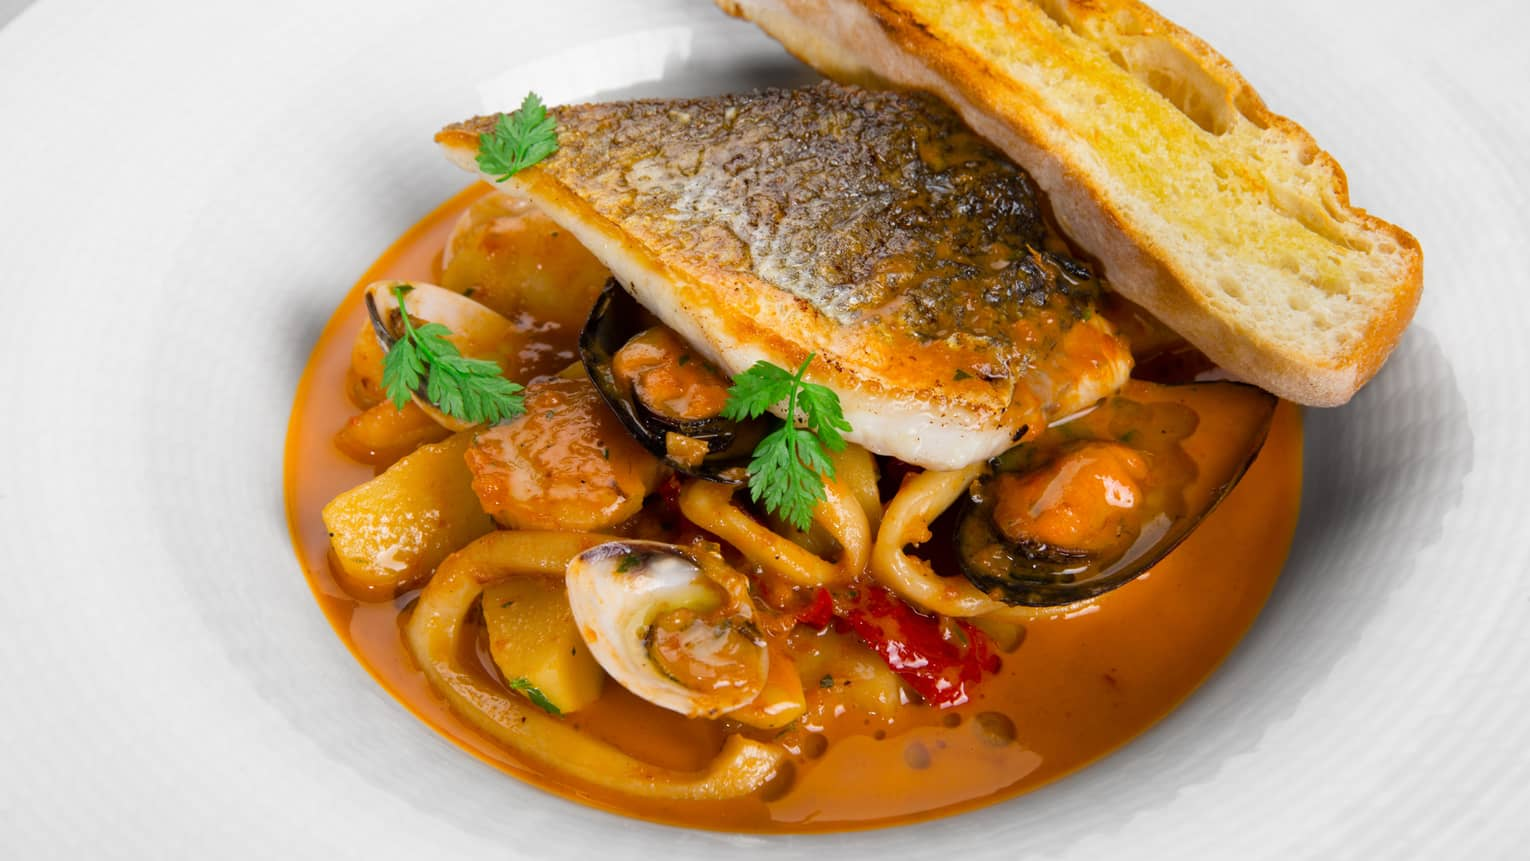 White bowl with fish fillet and skin, mussels, octopus and vegetables in red sauce, garlic toast